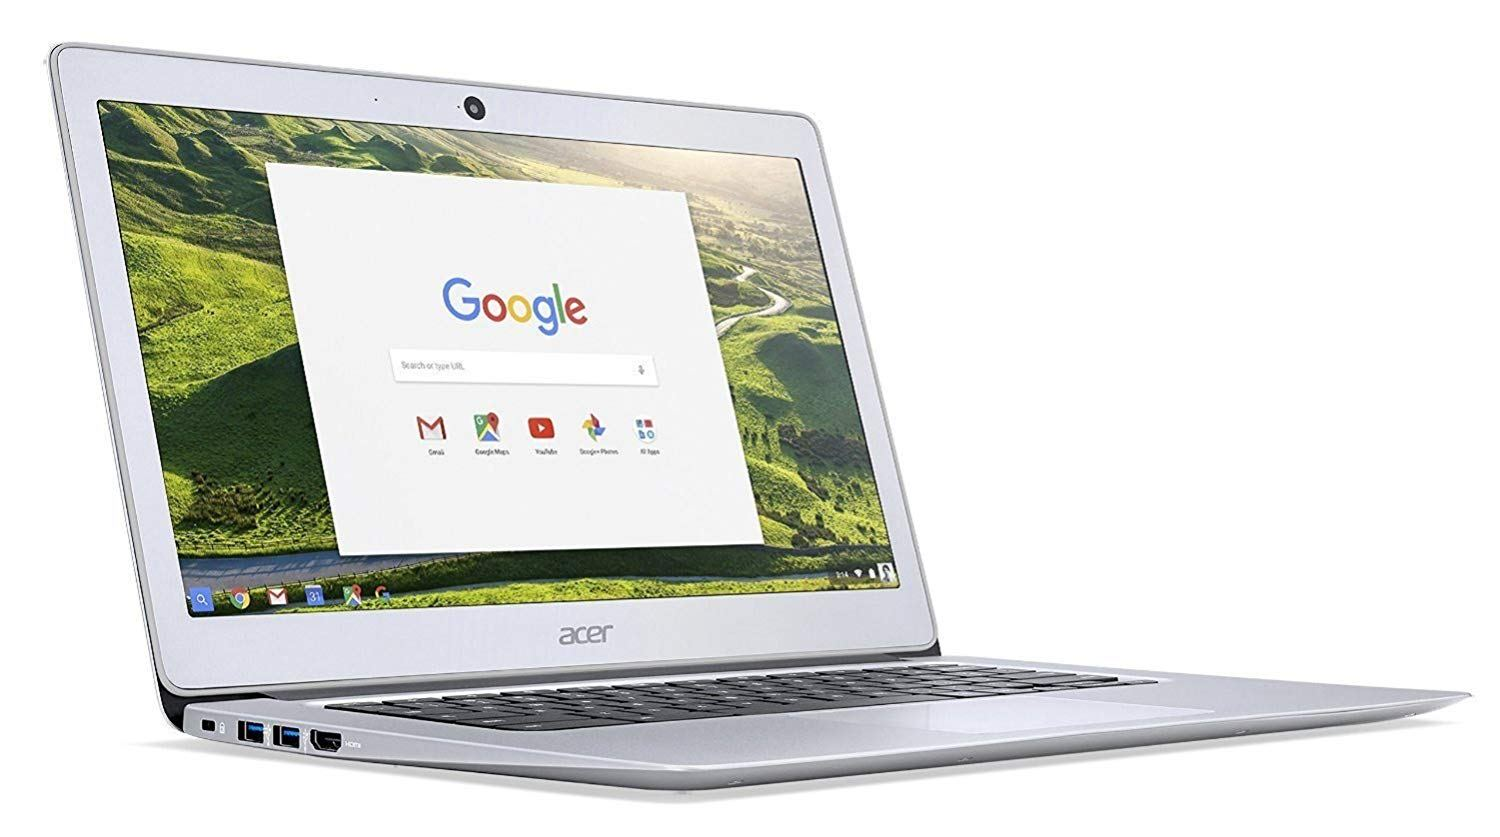 🔥 Prime Day 2019 : le PC Portable sous Chrome OS Acer Chromebook CB3 passe à 244 euros